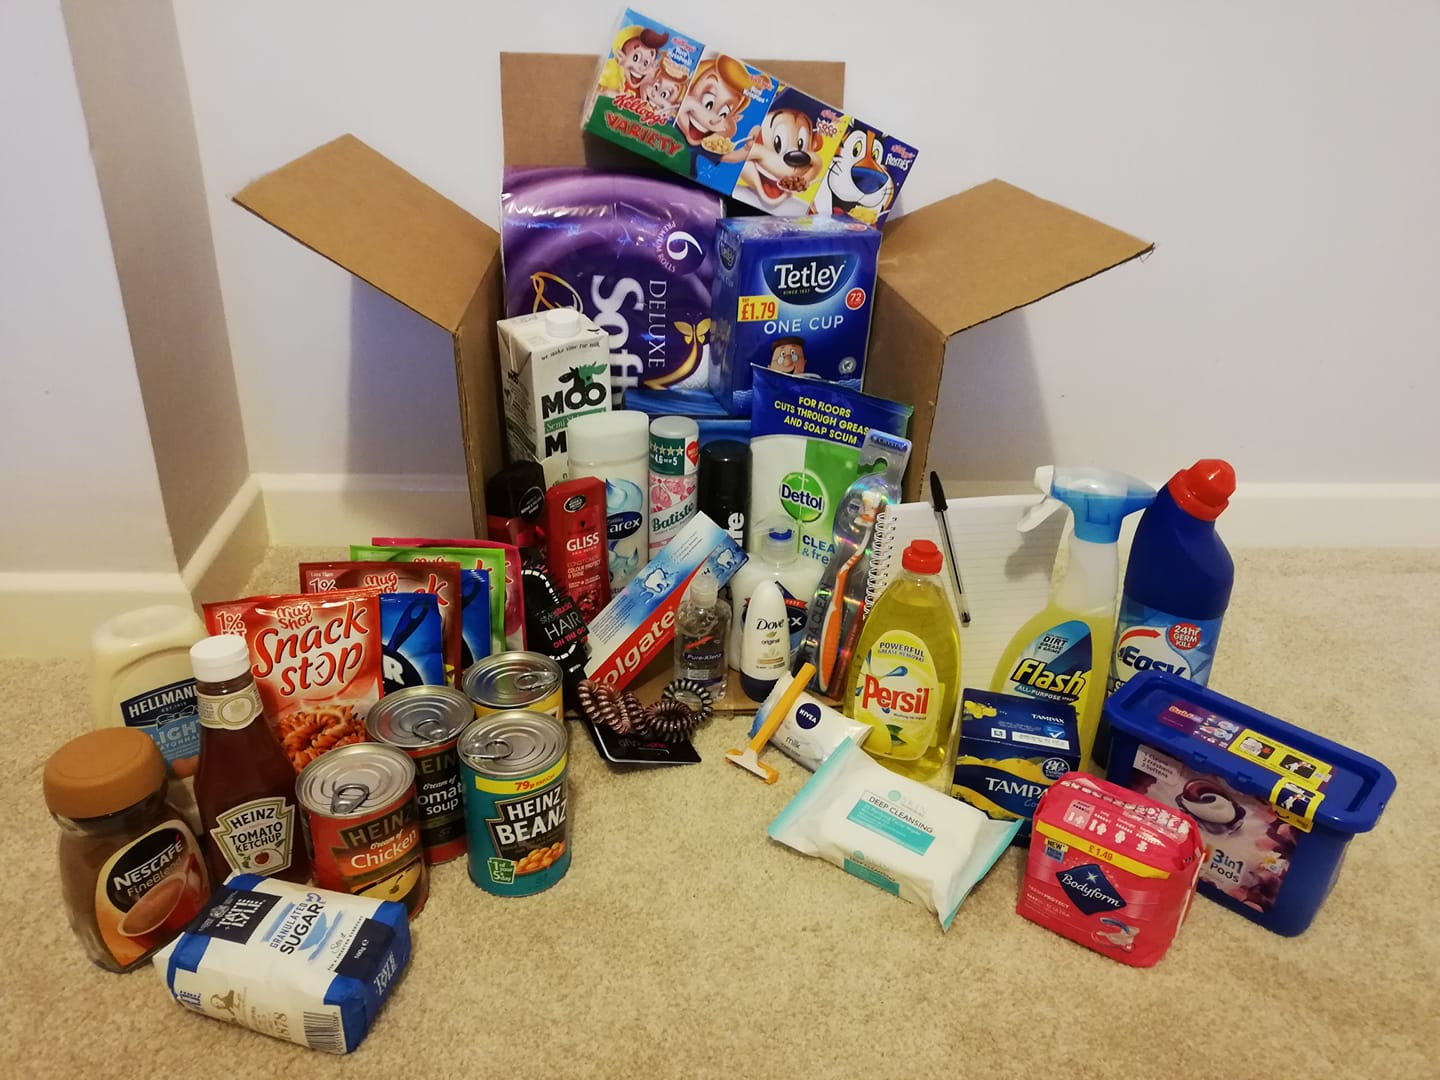 A supply box provided by the charity, Little Willows Wish